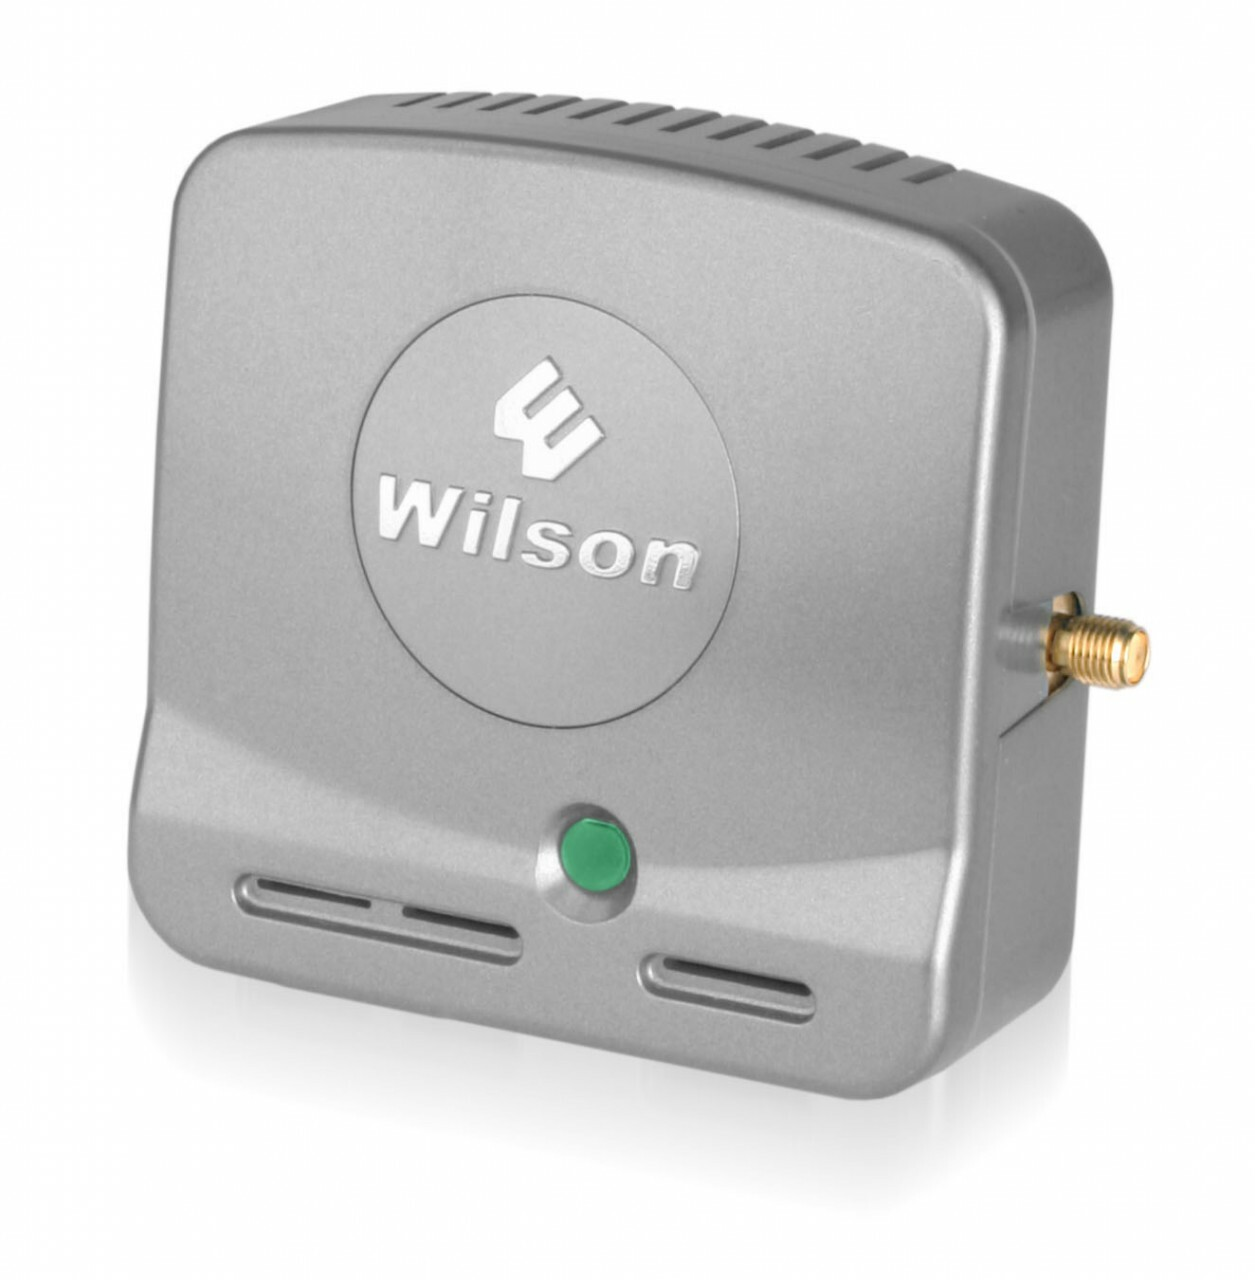 801230 Wilson Mobile Mini 40dB Amplifier Kit w/Inside Antenna DualBand